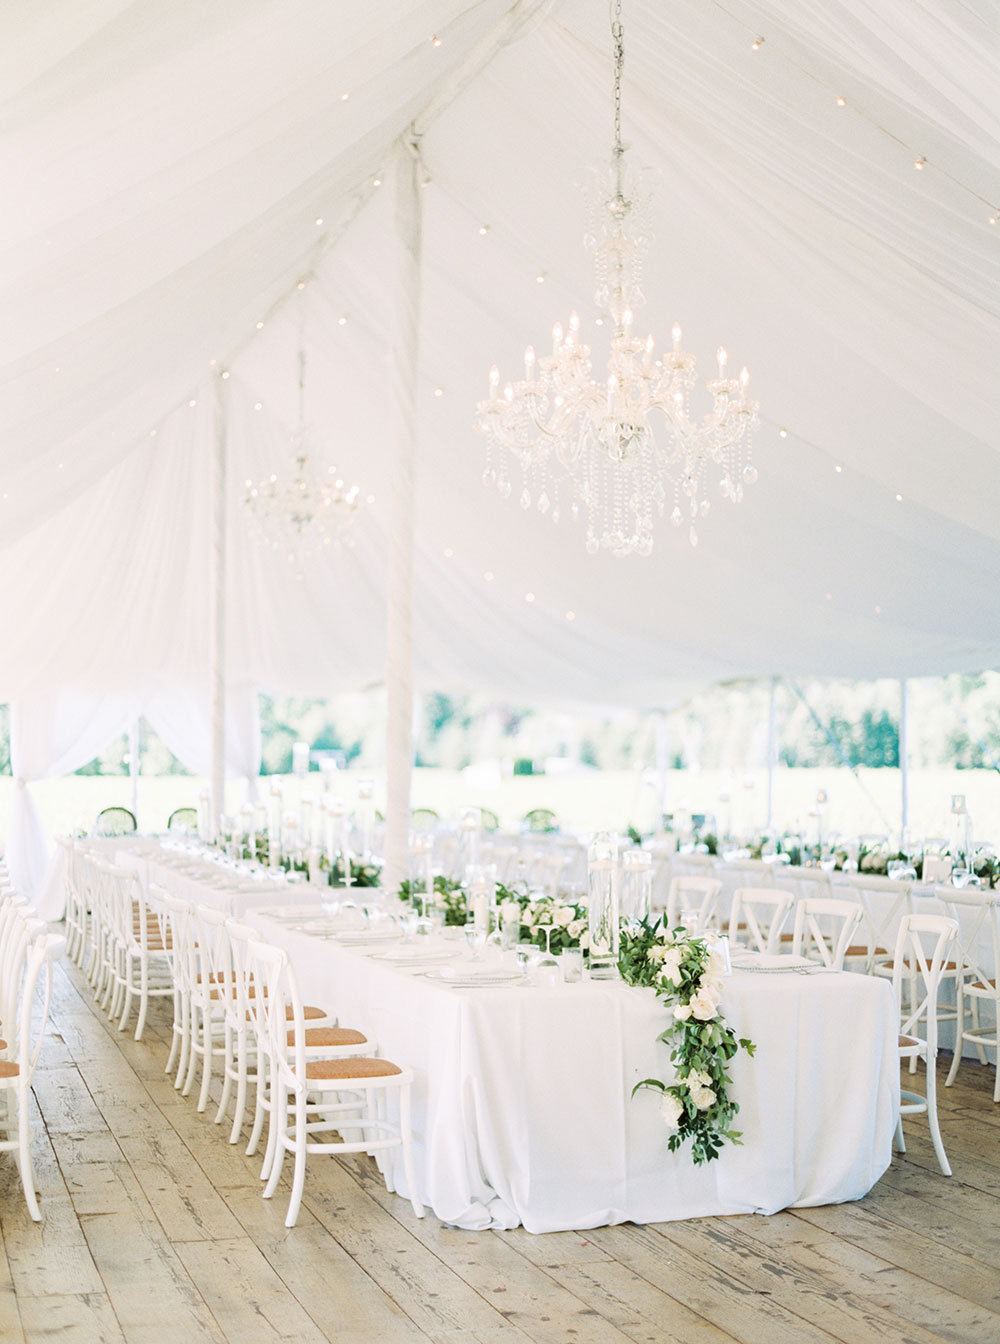 kurtz-orchards-wedding-gracewood-estate-niagara-on-the-lake-photo-by-katie-nicolle-photography-0073.JPG